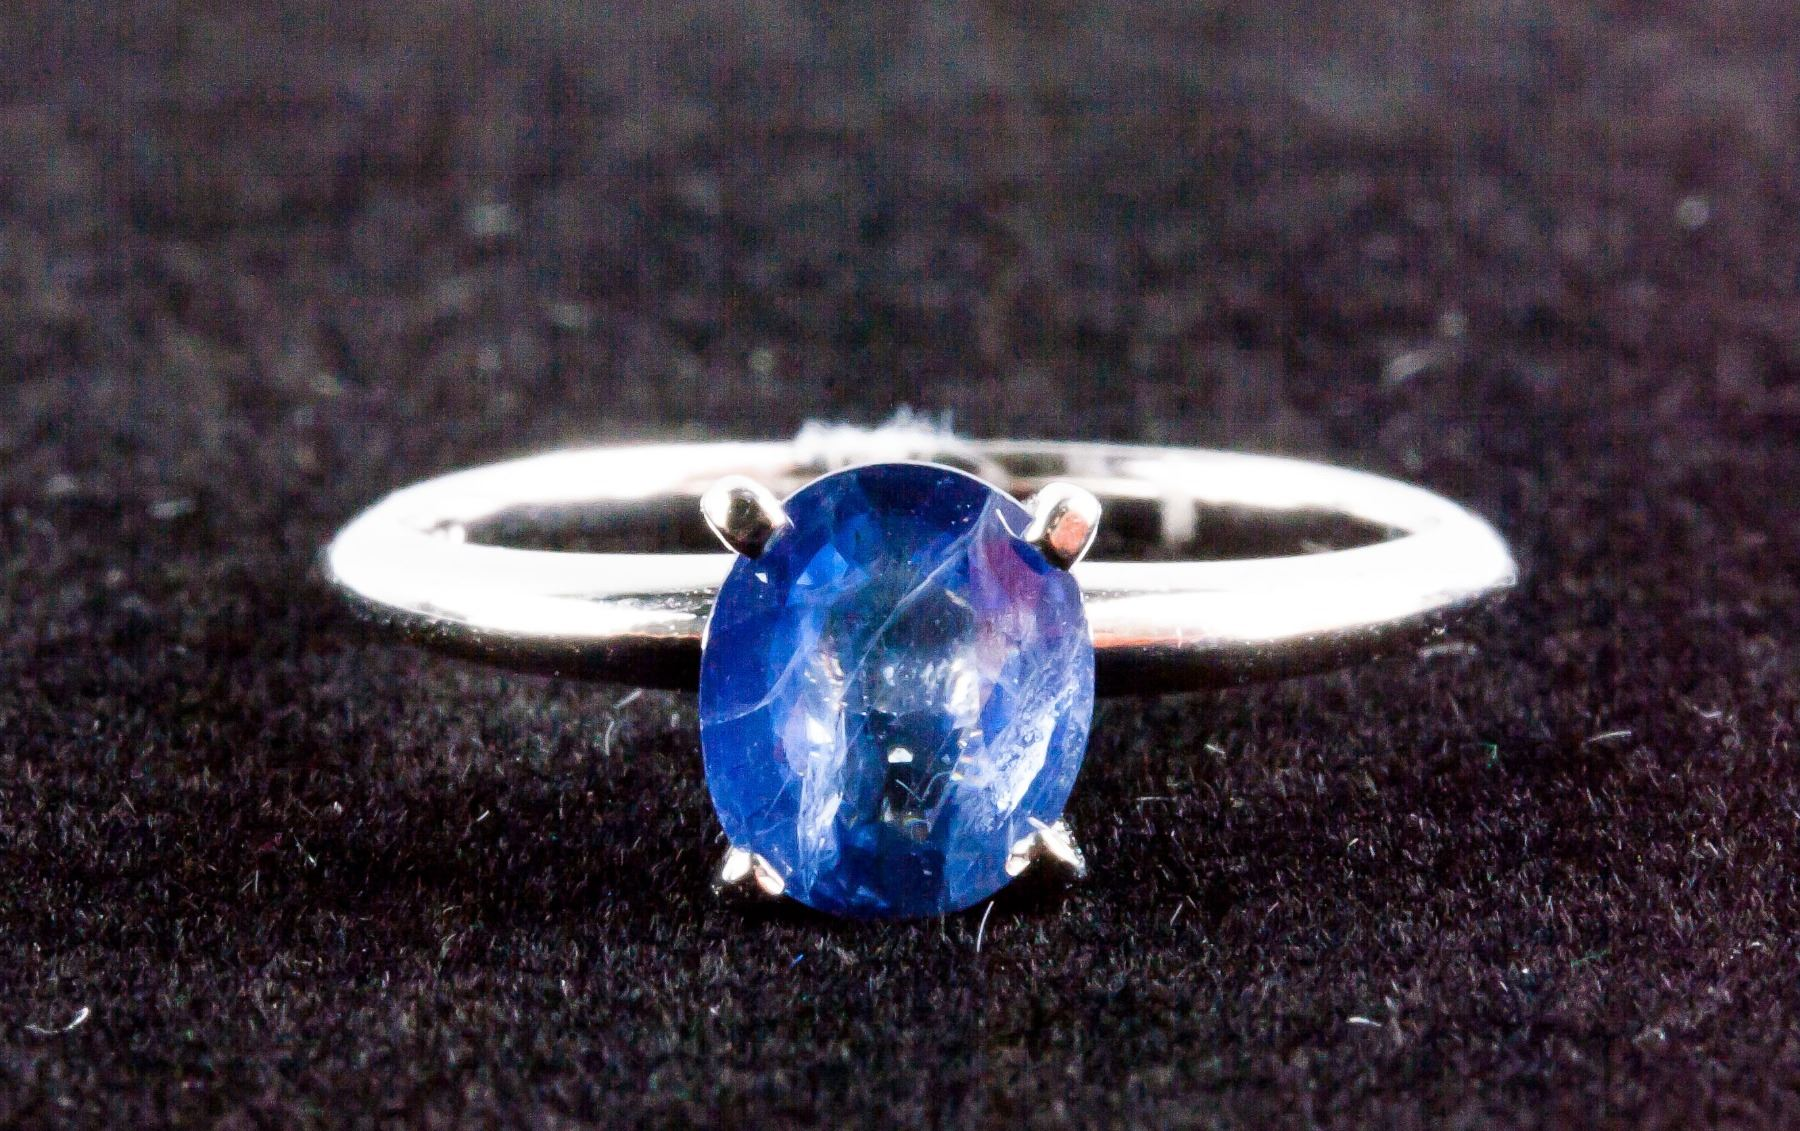 maniamania solitaire gold darker yellow sapphire ring side devotionsolitairering devotion bluesapphire products midnight blue yellowgold